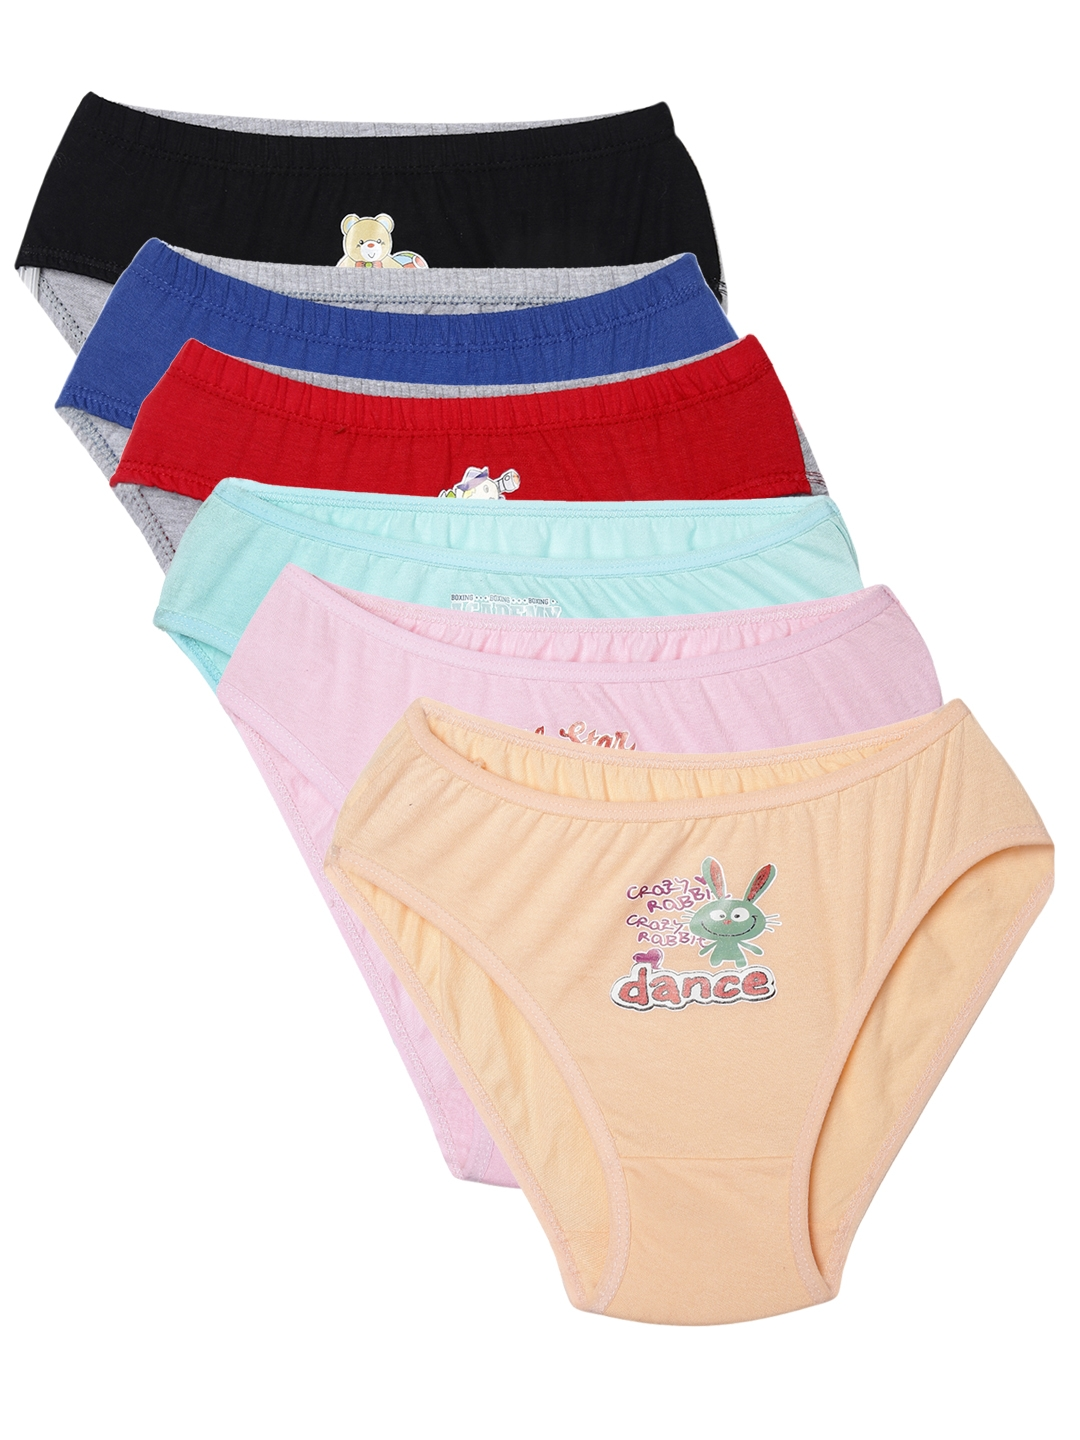 Leading Lady Girls Pack of 6 Briefs Polly Kashish 75 Leading Lady Briefs